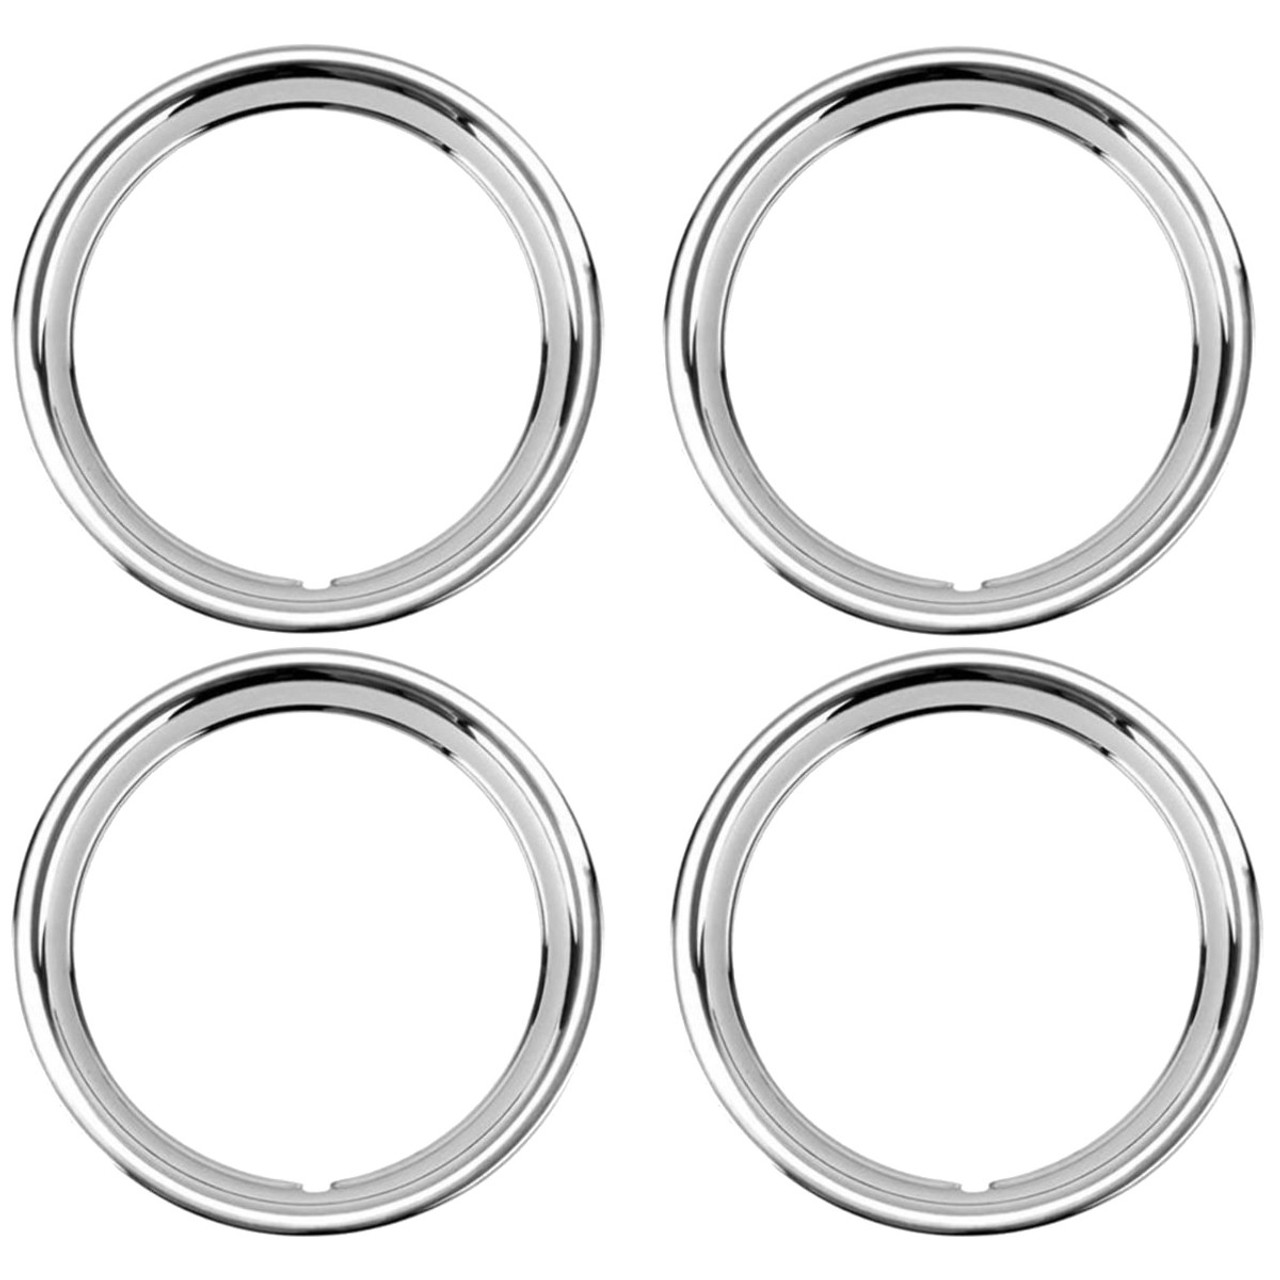 "15"" Ford Smooth Stainless Steel Wheel Trim Beauty Ring, Set of 4"